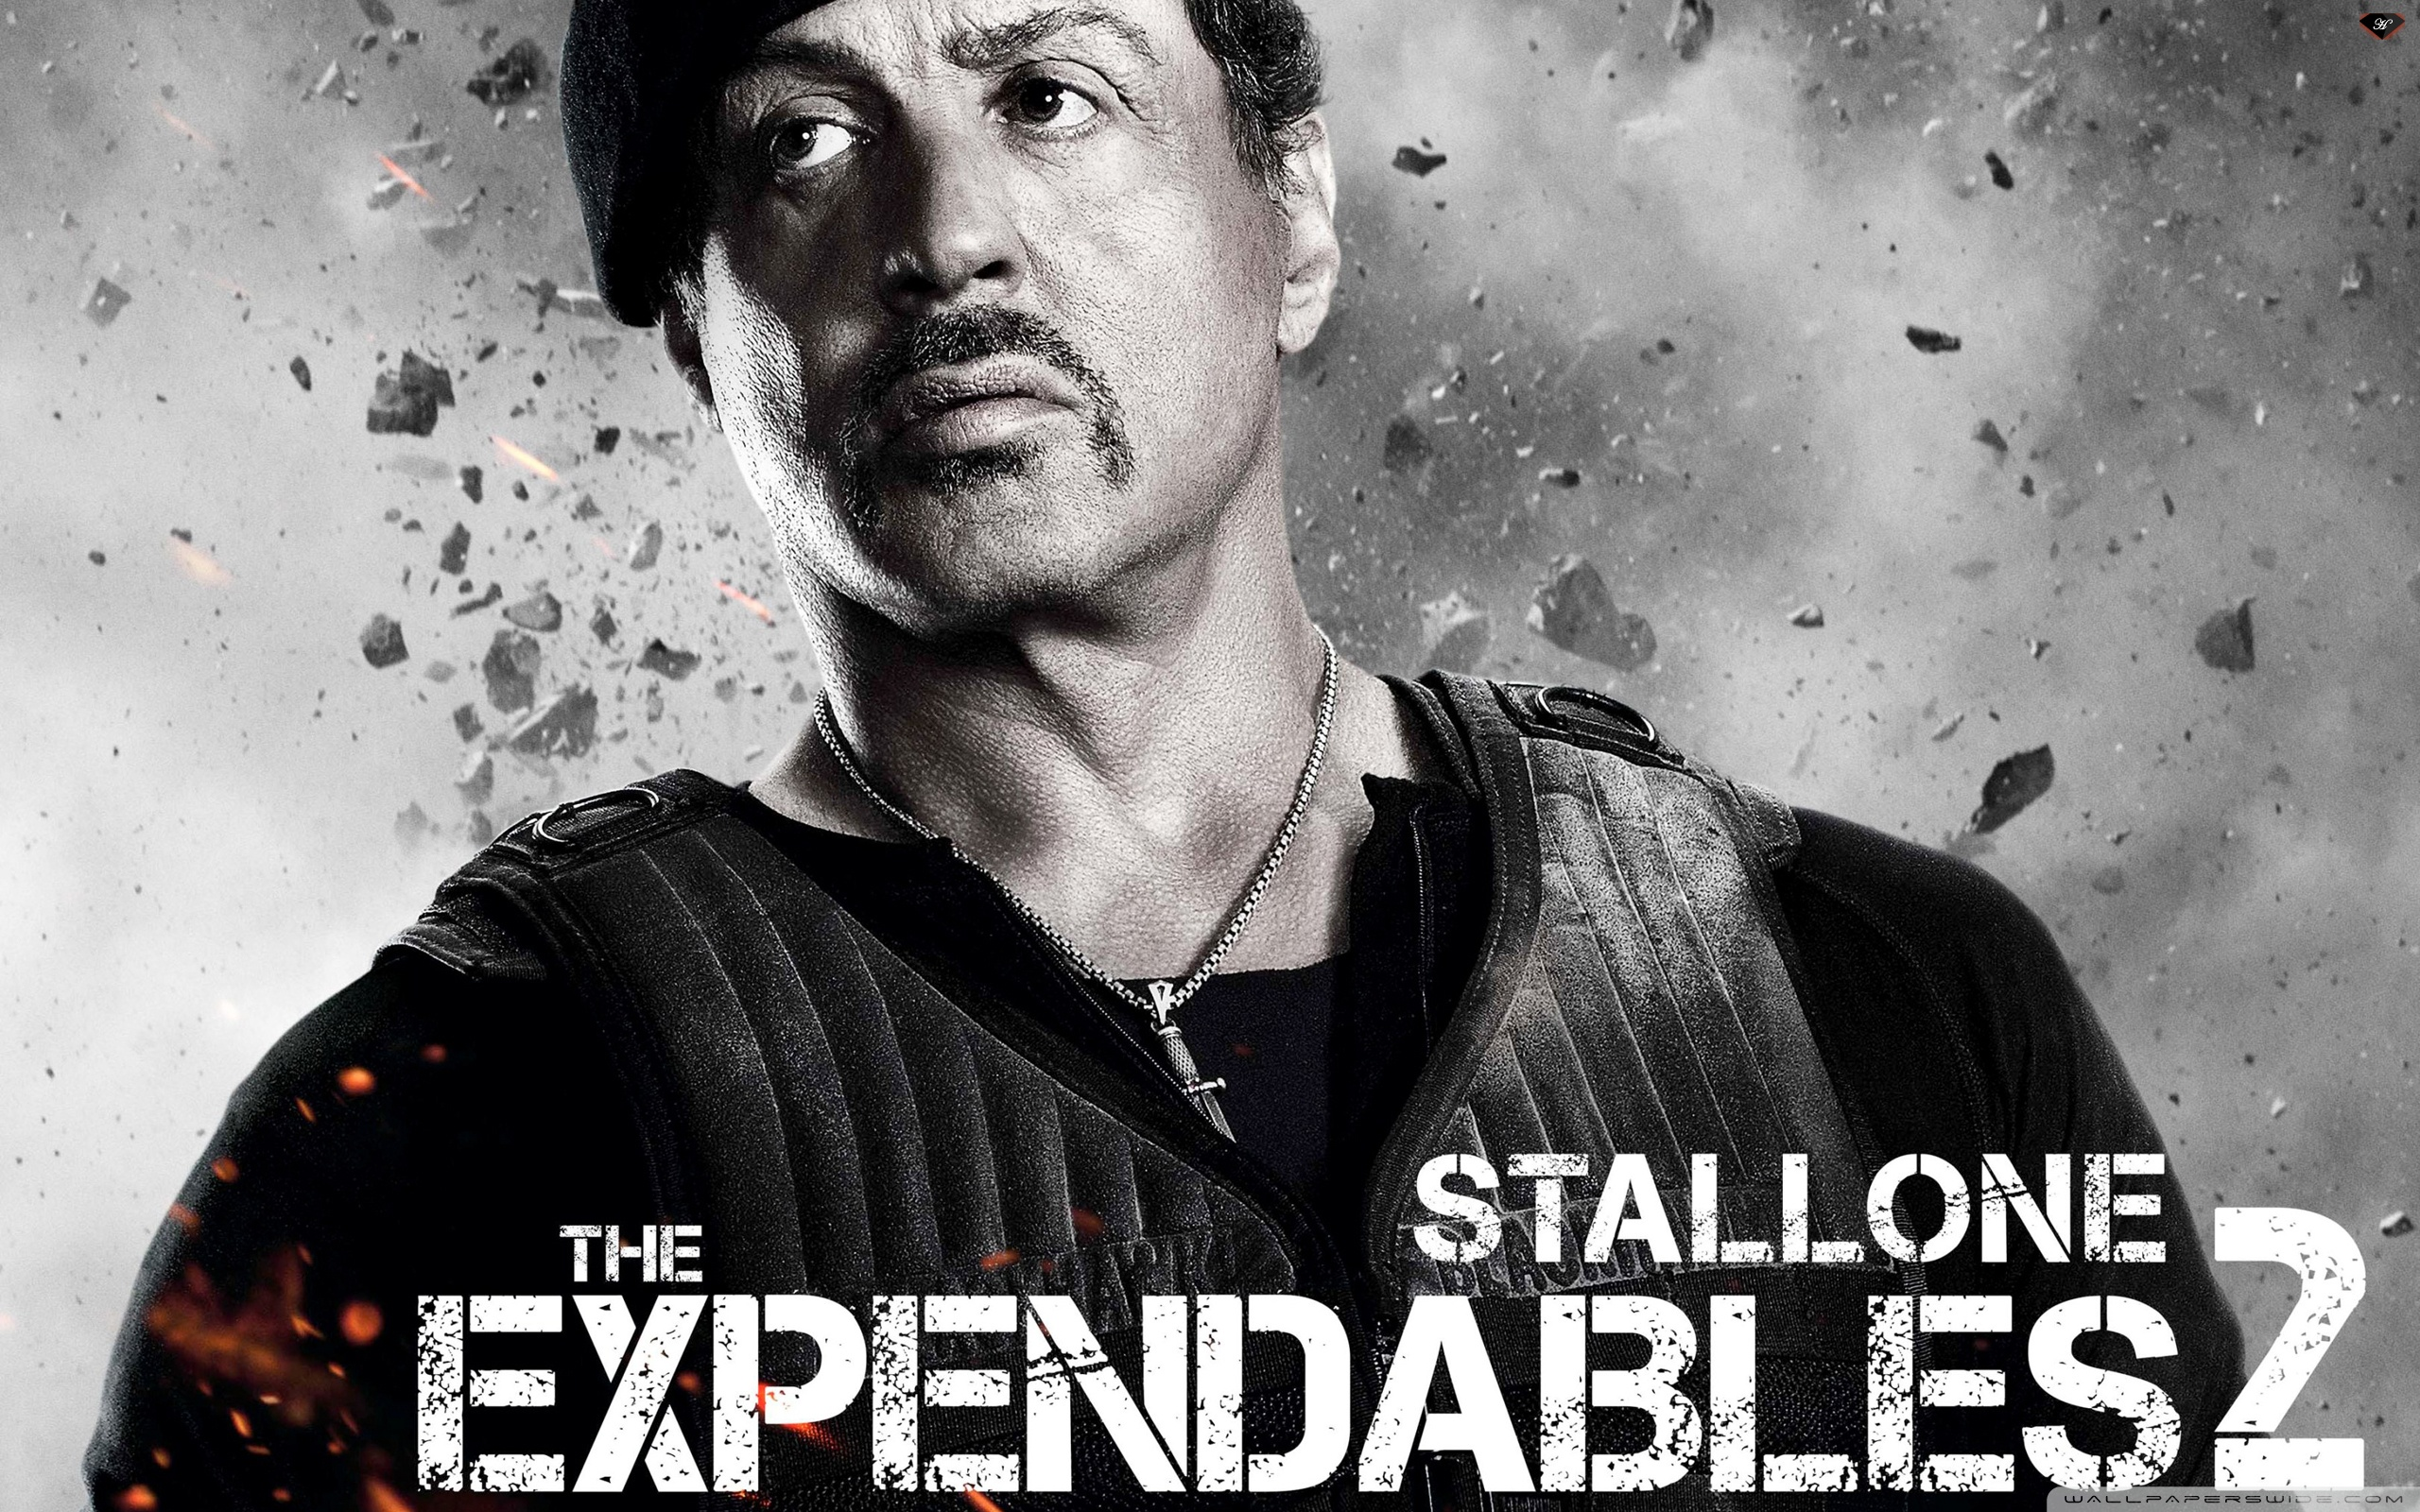 The Expendables 2 wallpaper 4